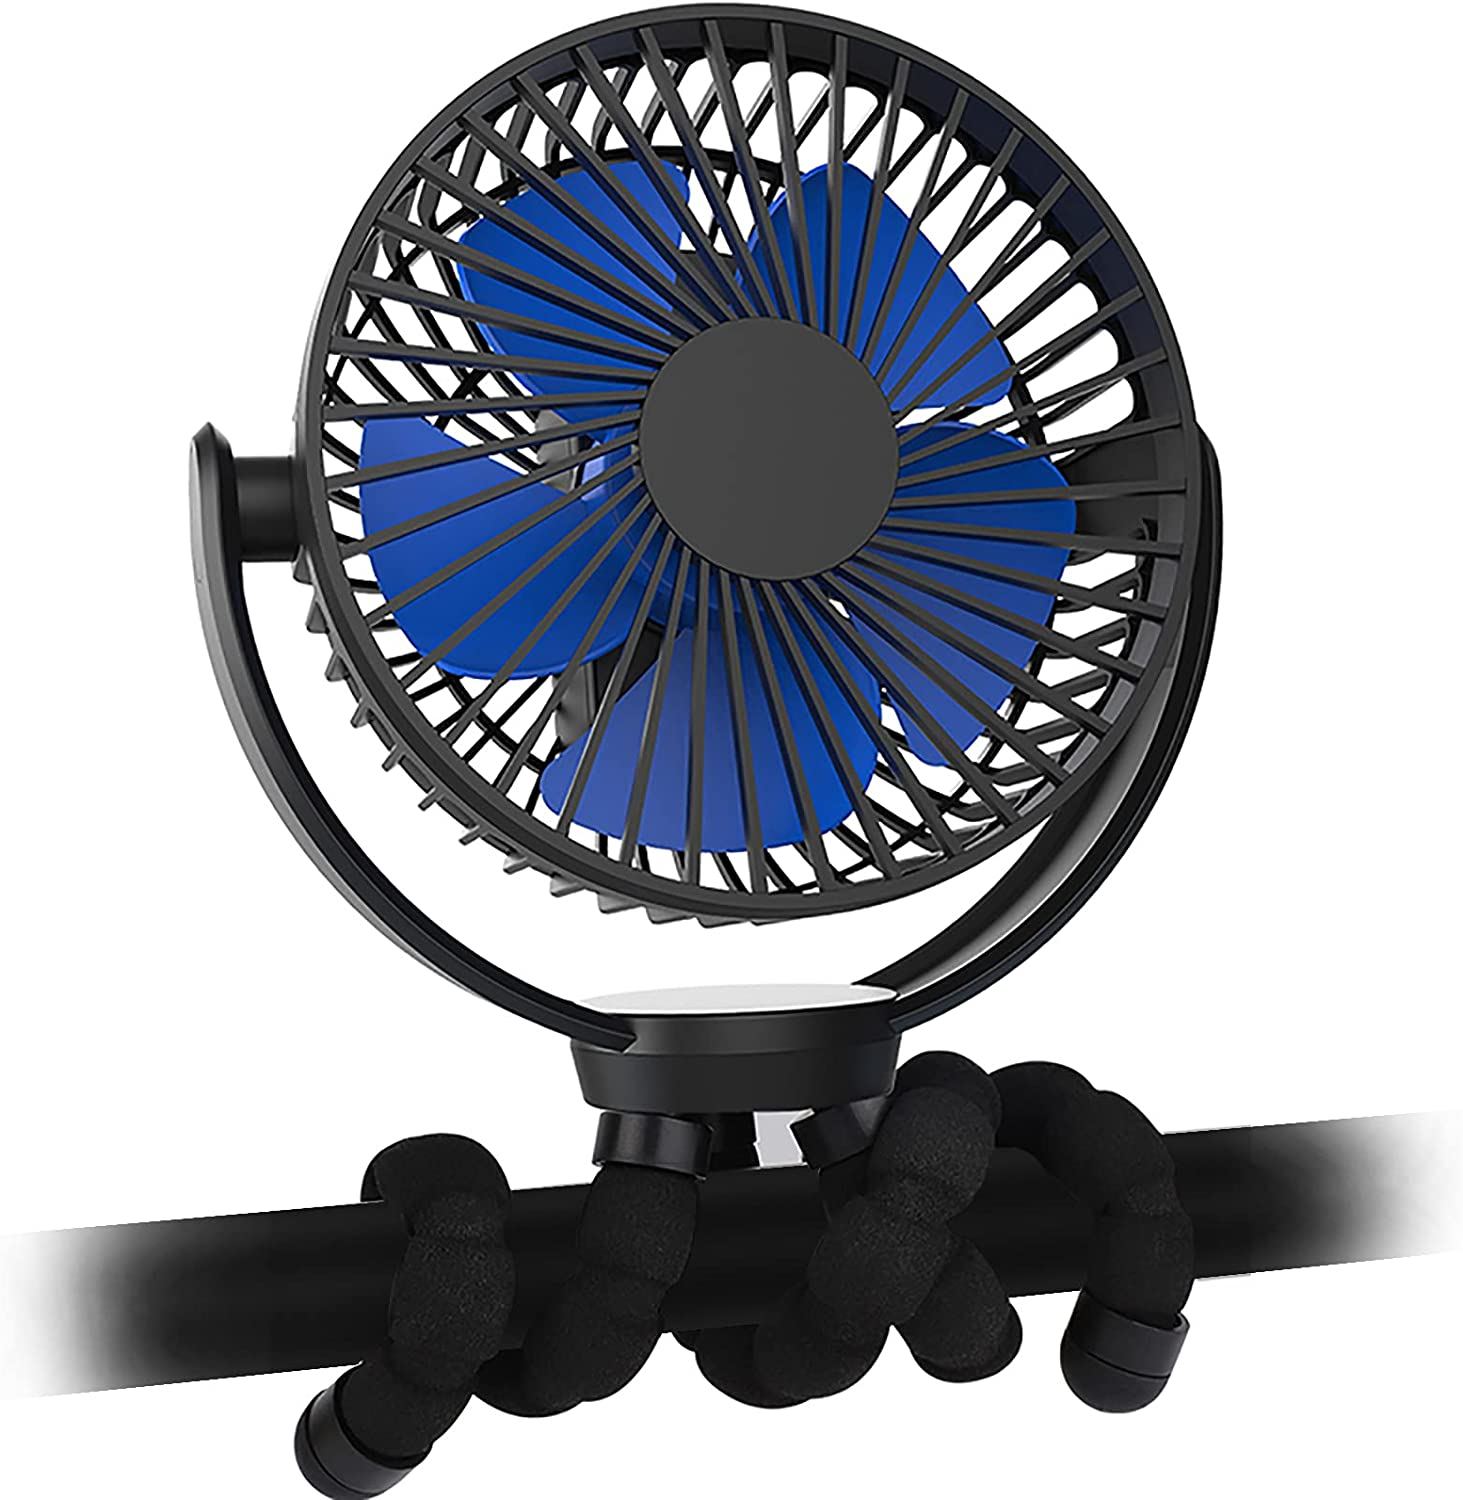 Svinkal Portable Fan,6 Inch Mini Fan,360 ° Rotatable Clip On Fan With Flexible Tripod,5000mAh Battery Operated ,Charging Or Usb Power Supply, Suitable For Strollers, Offices, Desks, Travel, Camping And Other Places